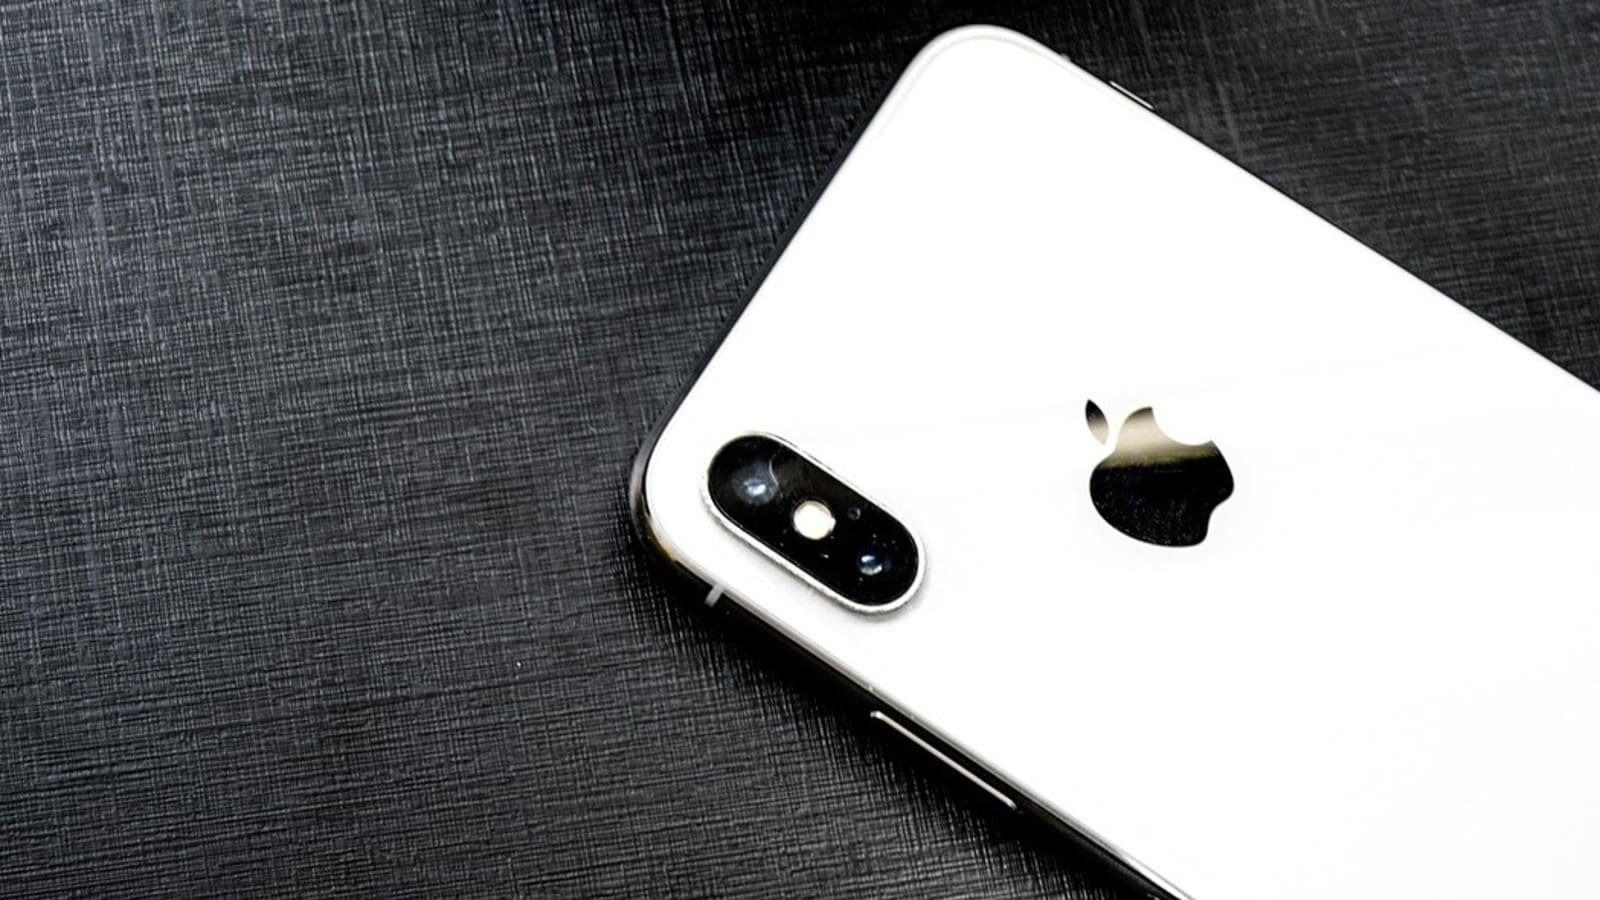 Have iPhone X or older models? You won't get these iOS 15 features